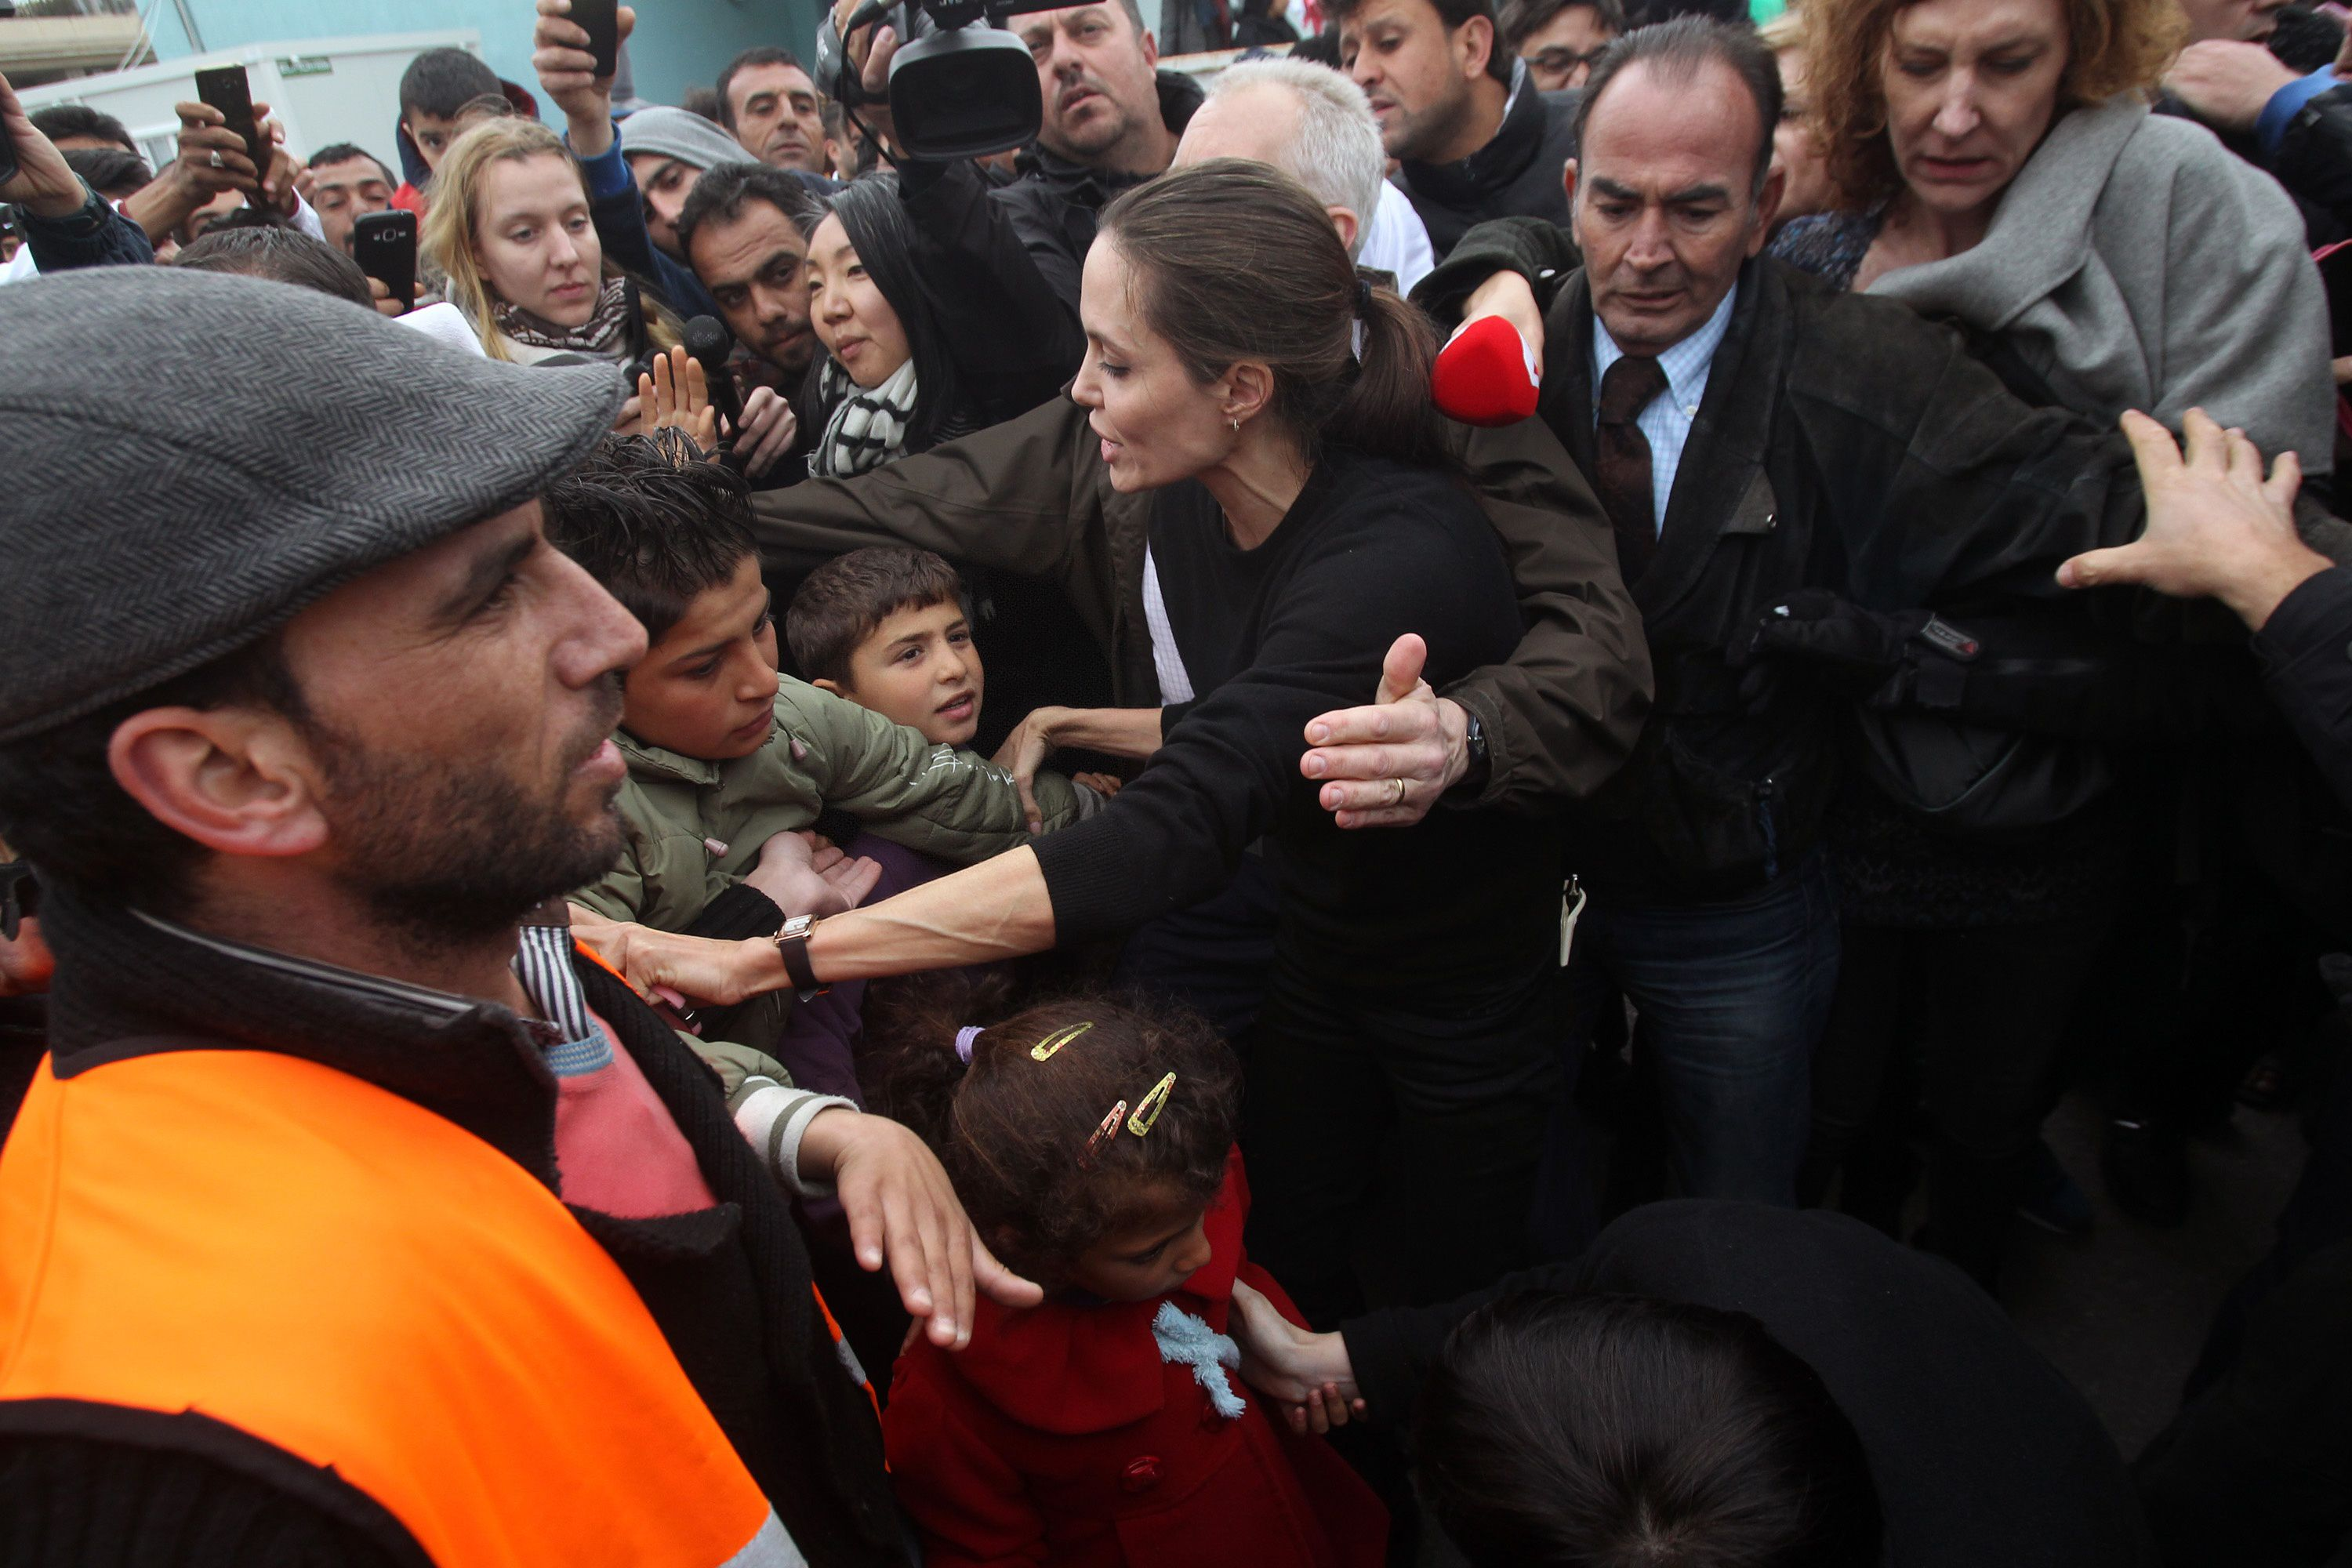 Angelina Jolie Used Herself as a Shield to Protect Kids From a Mob in Greece